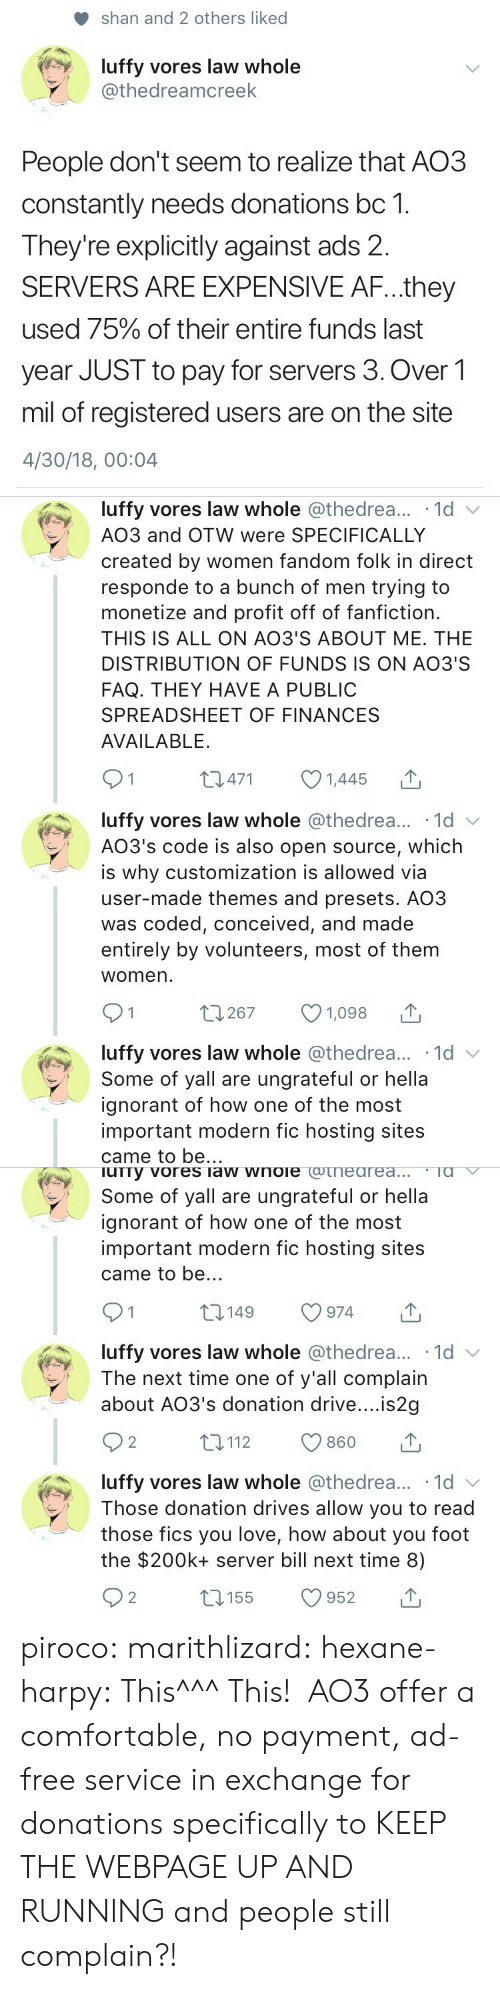 open source: shan and 2 others liked  luffy vores law whole  @thedreamcreek  People don't seem to realize that AO3  constantly needs donations bc 1.  Theyre explicitly against ads 2.  SERVERS ARE EXPENSIVE AF...they  used 75% of their entire funds last  year JUST to pay for servers 3. Over1  mil of registered users are on the site  4/30/18, 00:04   luffy vores law whole @thedrea... 1d v  AO3 and OTW were SPECIFICALLY  created by women fandom folk in direct  responde to a bunch of men trying to  monetize and profit off of fanfiction.  THIS IS ALL ON AO3'S ABOUT ME. THE  DISTRIBUTION OF FUNDS IS ON AO3'S  FAQ. THEY HAVE A PUBLIC  SPREADSHEET OF FINANCES  AVAILABLE.  01 0471 1445  luffy vores law whole @thedrea... 1d  AO3's code is also open source, which  is why customization is allowed via  user-made themes and presets. AO3  was coded, conceived, and made  entirely by volunteers, most of them  womern  luffy vores law whole @thedrea... 1d  Some of yall are ungrateful or hella  ignorant of how one of the most  important modern fic hosting sites  came to be..   urry vores law wnoie cotneareaTa  Some of yall are ungrateful or hella  ignorant of how one of the most  important modern fic hosting sites  came to be..  t0149 974  luffy vores law whole @thedrea... 1d v  The next time one of y'all complain  about AO3's donation drive....is2g  92 t112 860 T  luffy vores law whole @thedrea... 1d  Those donation drives allow you to read  those fics you love, how about you foot  the $200k+ server bill next time 8) piroco: marithlizard:  hexane-harpy: This^^^ This!  AO3 offer a comfortable, no payment, ad-free service in exchange for donations specifically to KEEP THE WEBPAGE UP AND RUNNING and people still complain?!